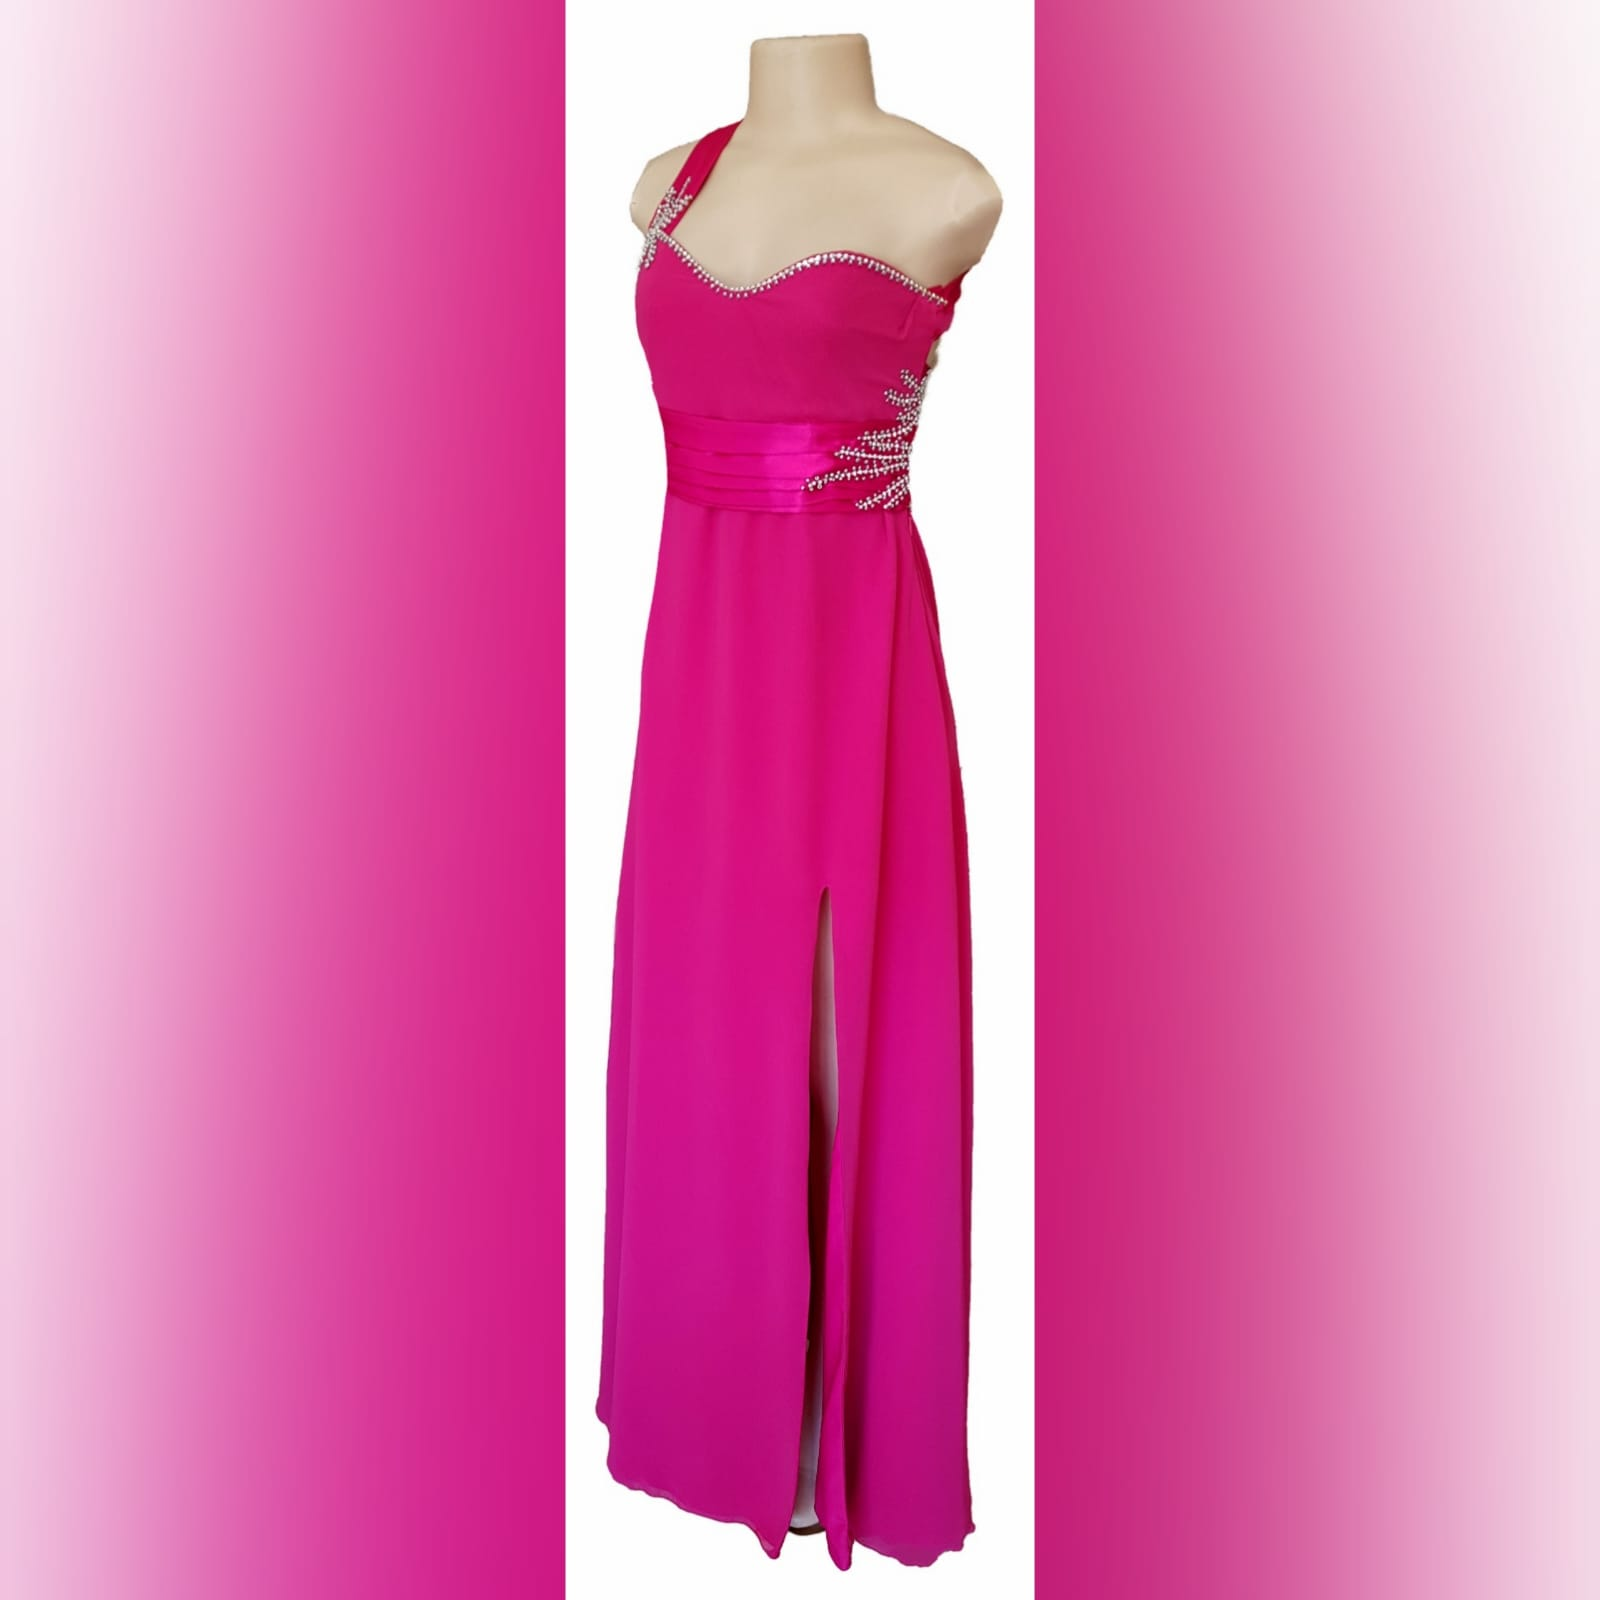 Cerise pink long flowy sexy evening dress 2 cerise pink long flowy sexy evening dress with a slit. One shoulder with a sweetheart neckline. Open back detailed with wide straps. Pleated belt. Dress beaded with silver.